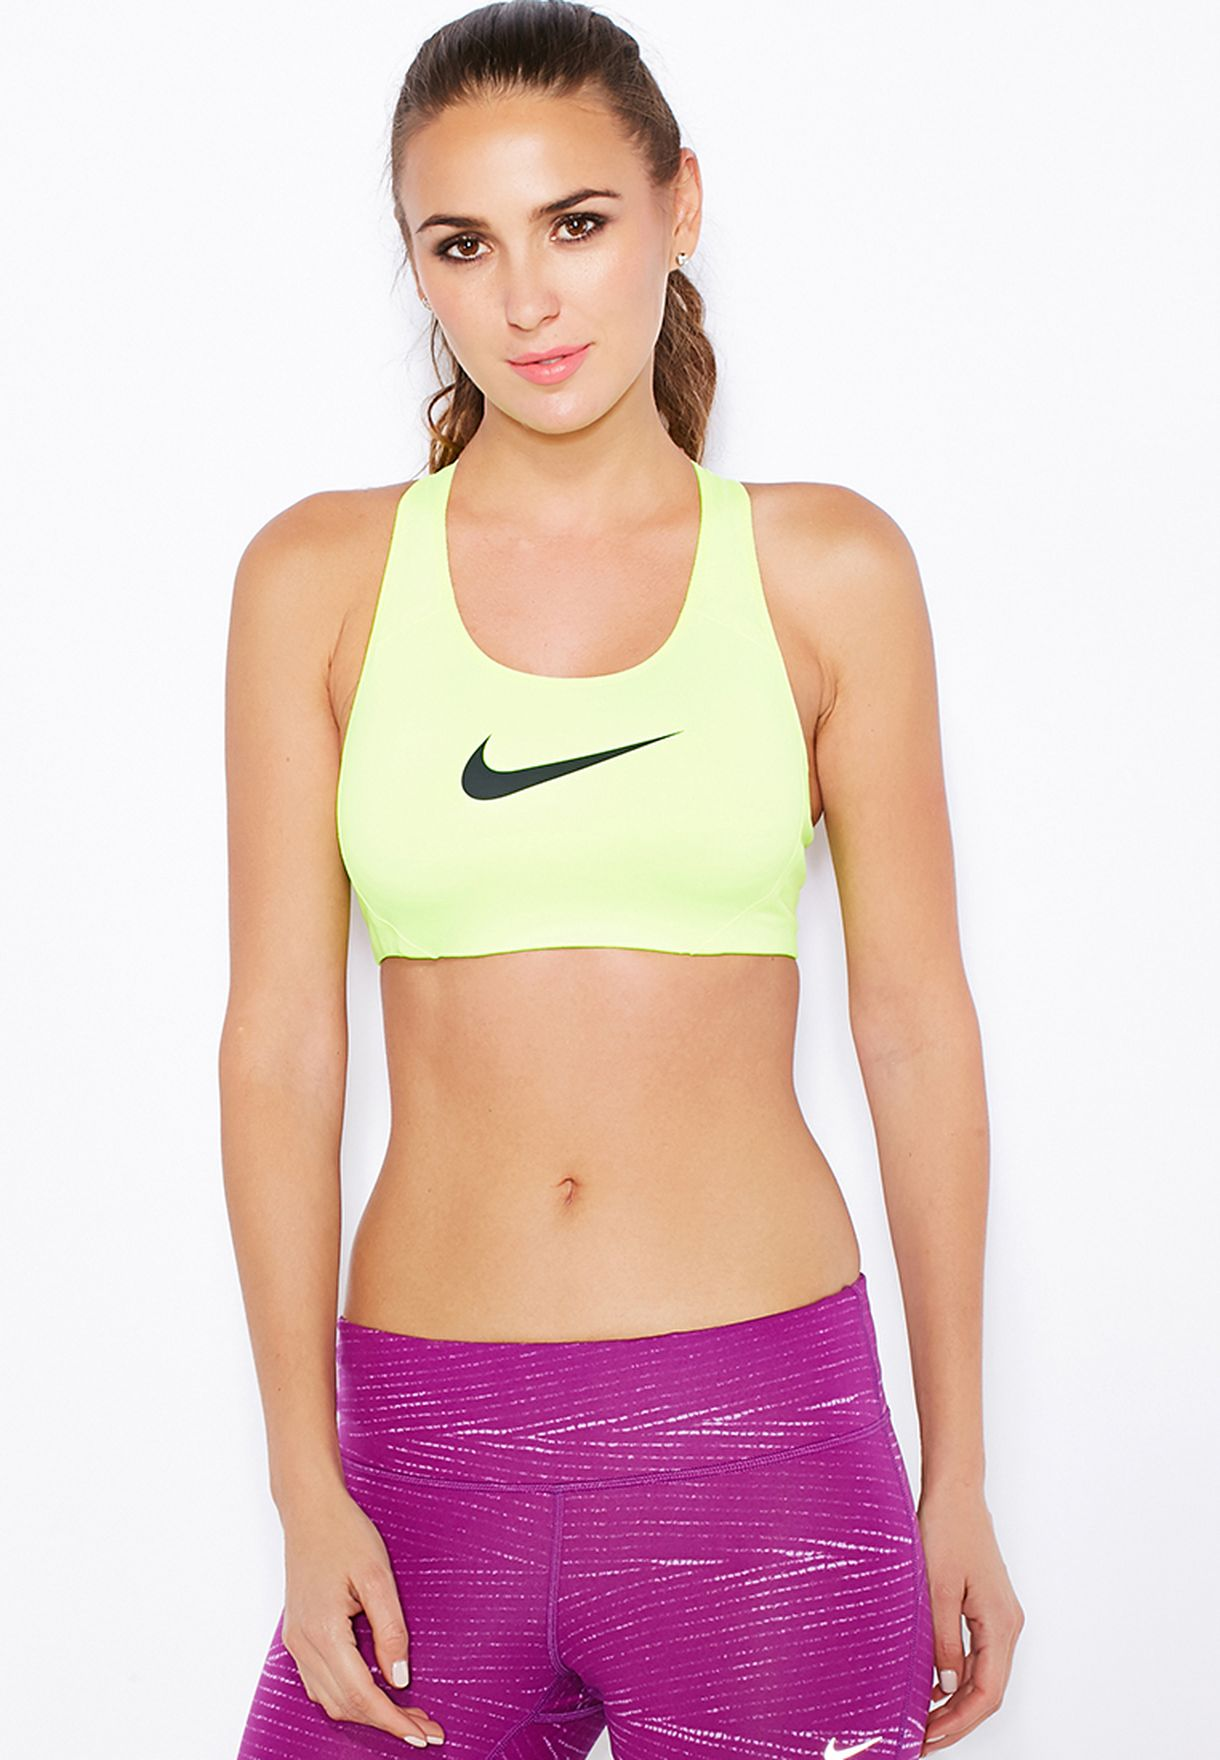 02adf8913a Shop Nike yellow Victory Shape Bra 548545-703 for Women in Saudi -  NI727AT41ZLQ